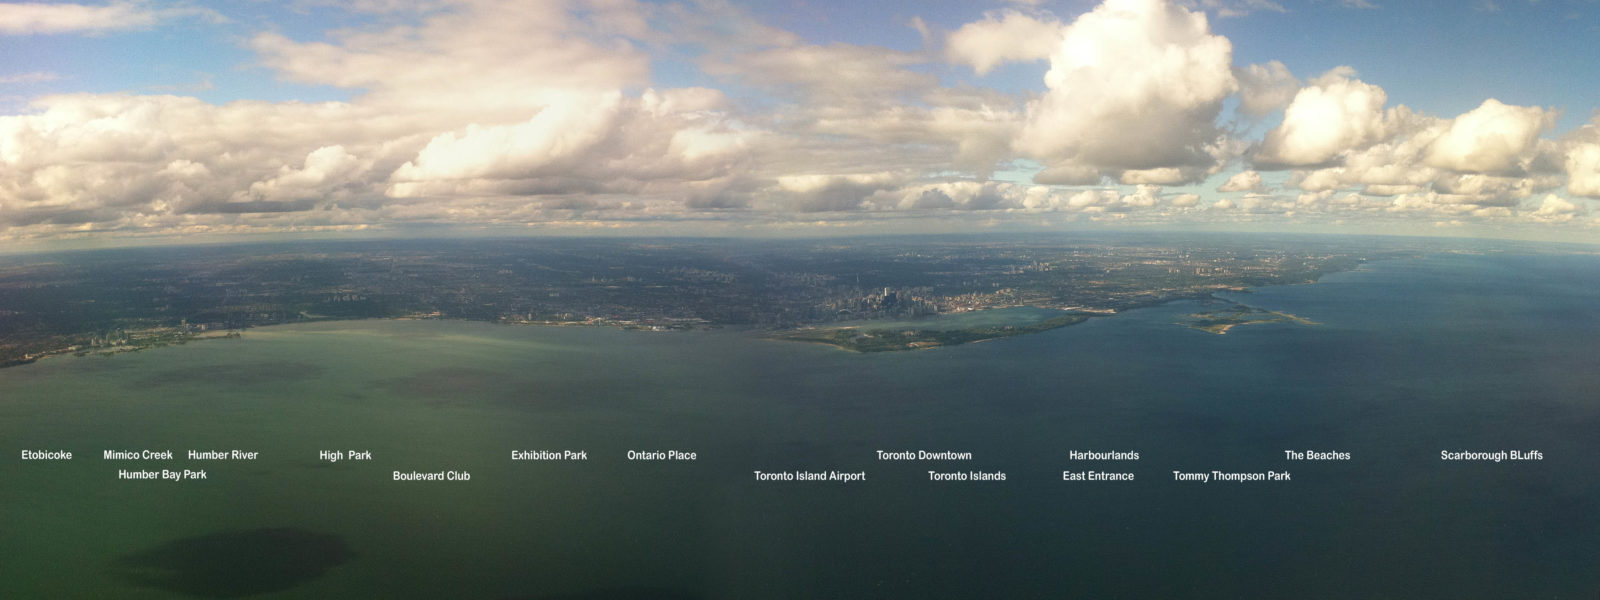 Toronto Waterfront Wide, taken from airplane